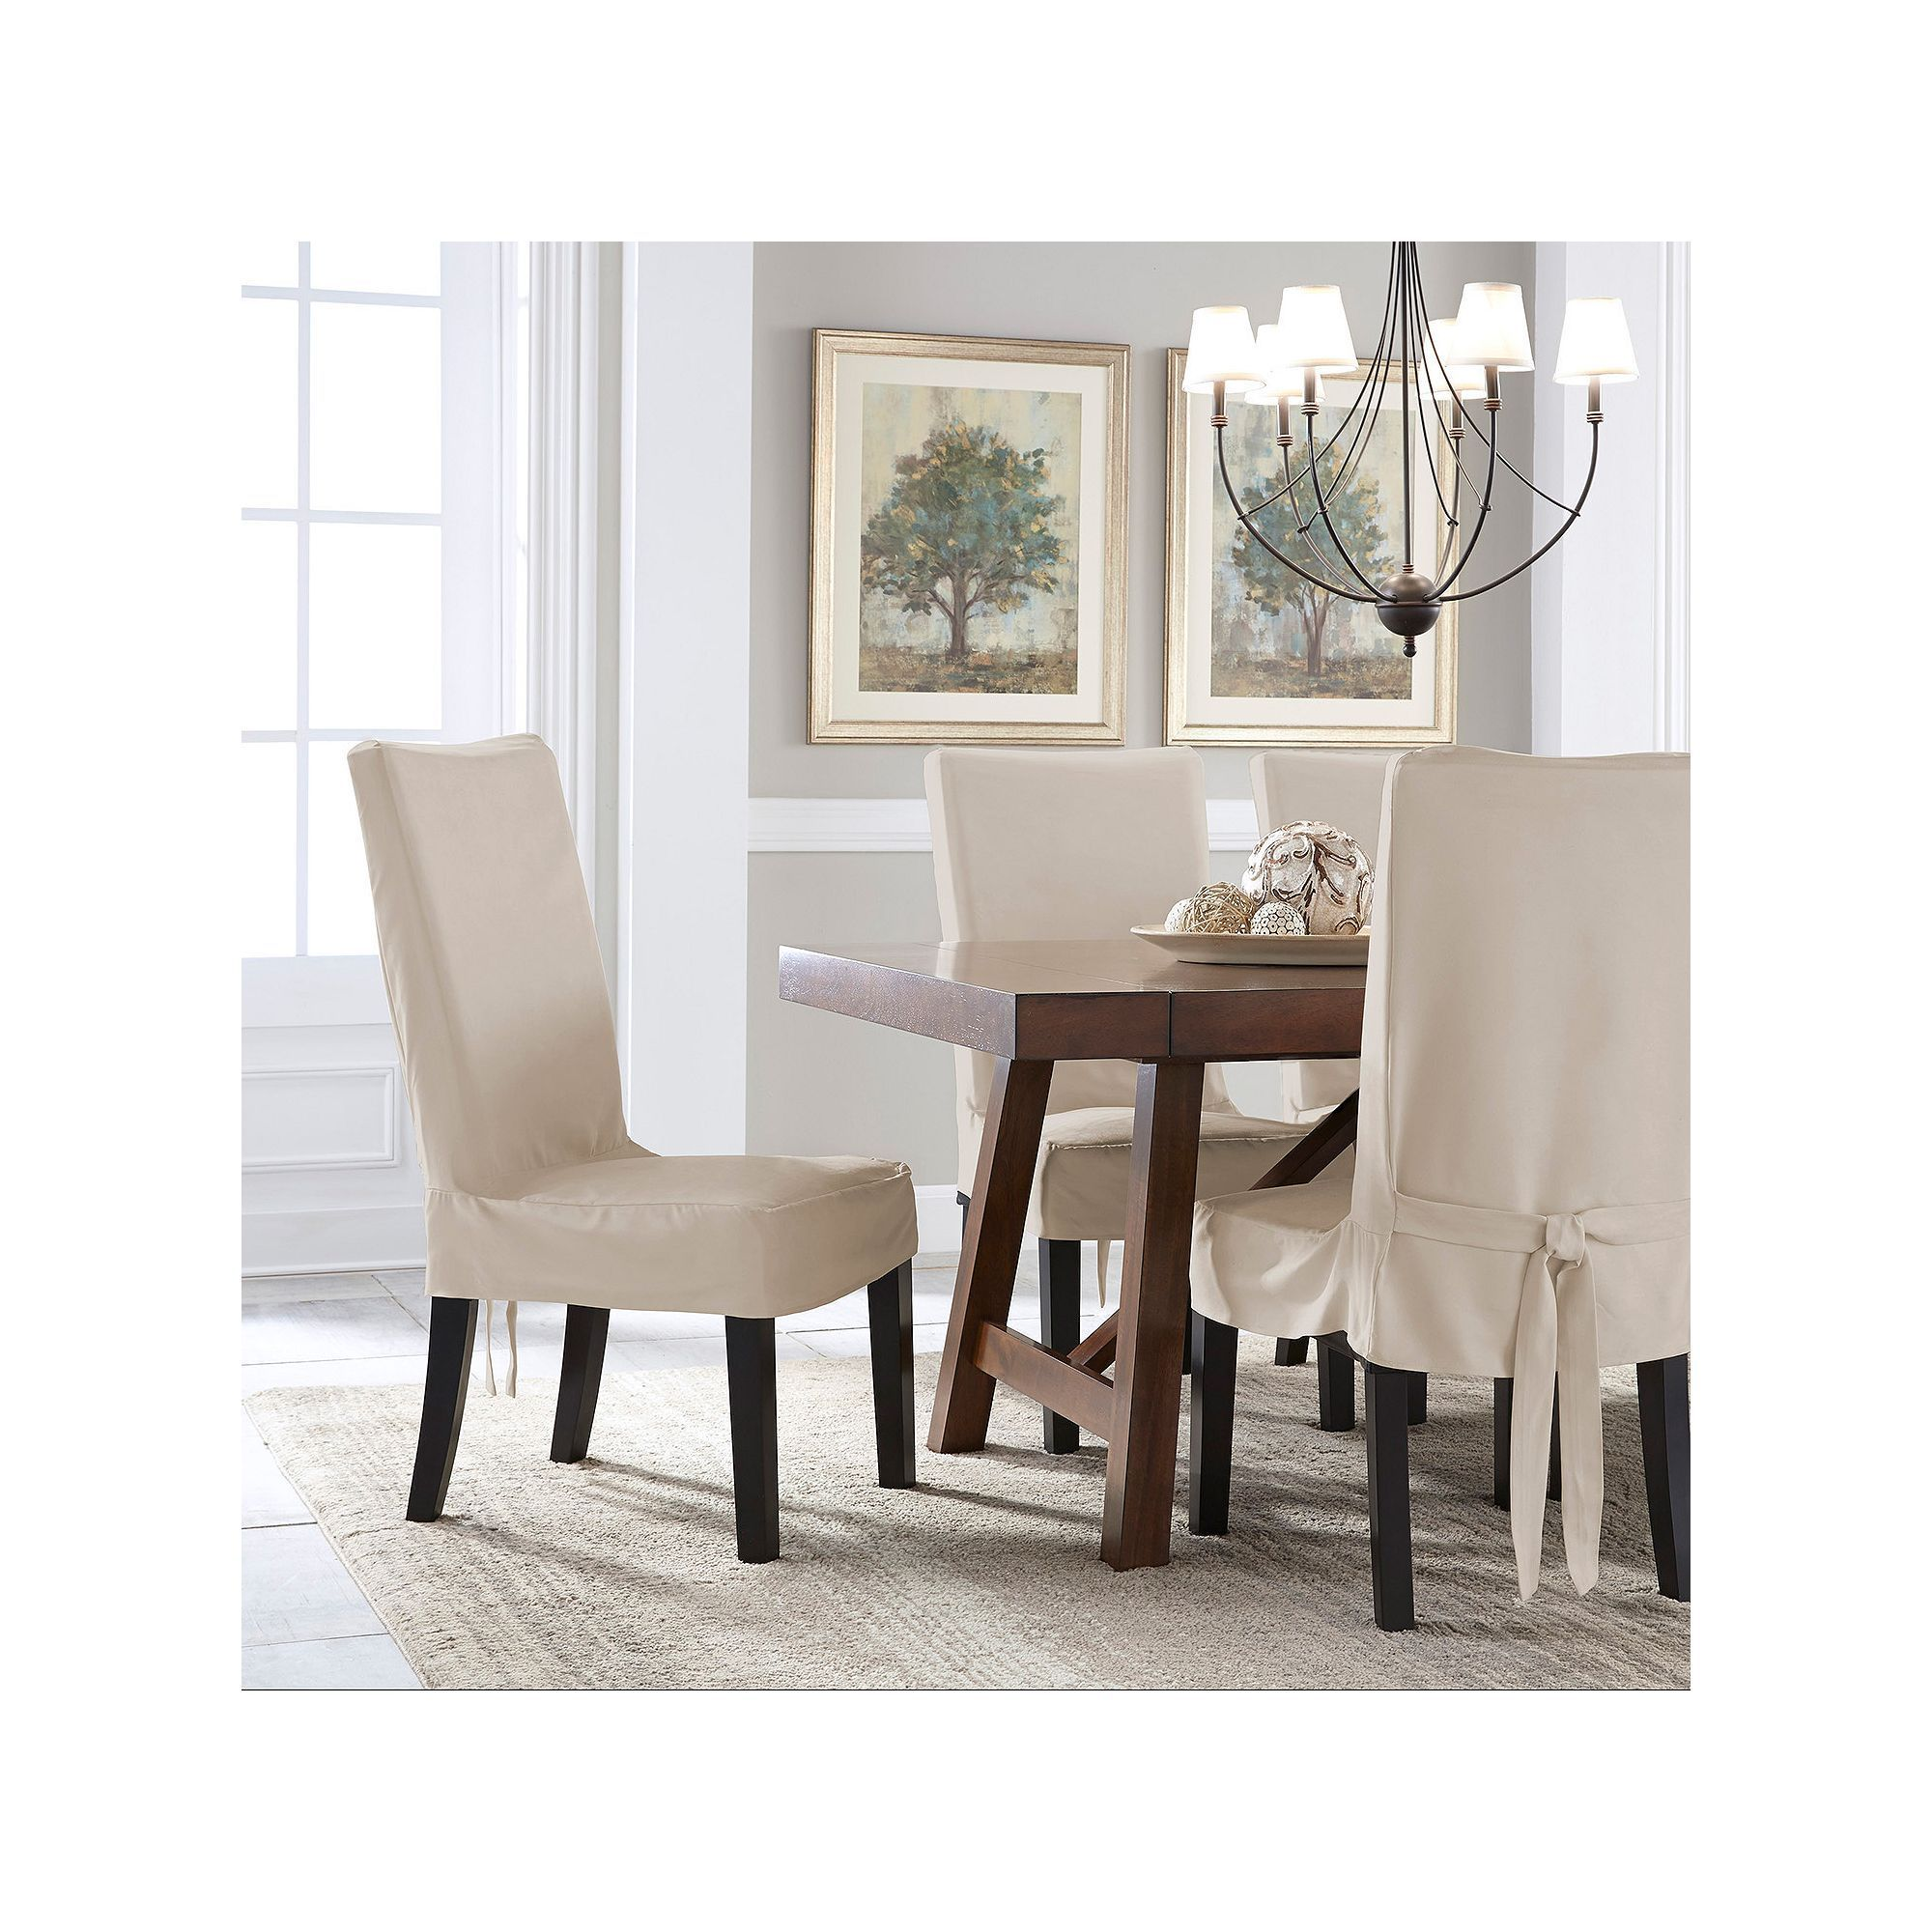 Serta Relaxed Fit Smooth Suede Dining Chair Slipcover | Dining chair ...